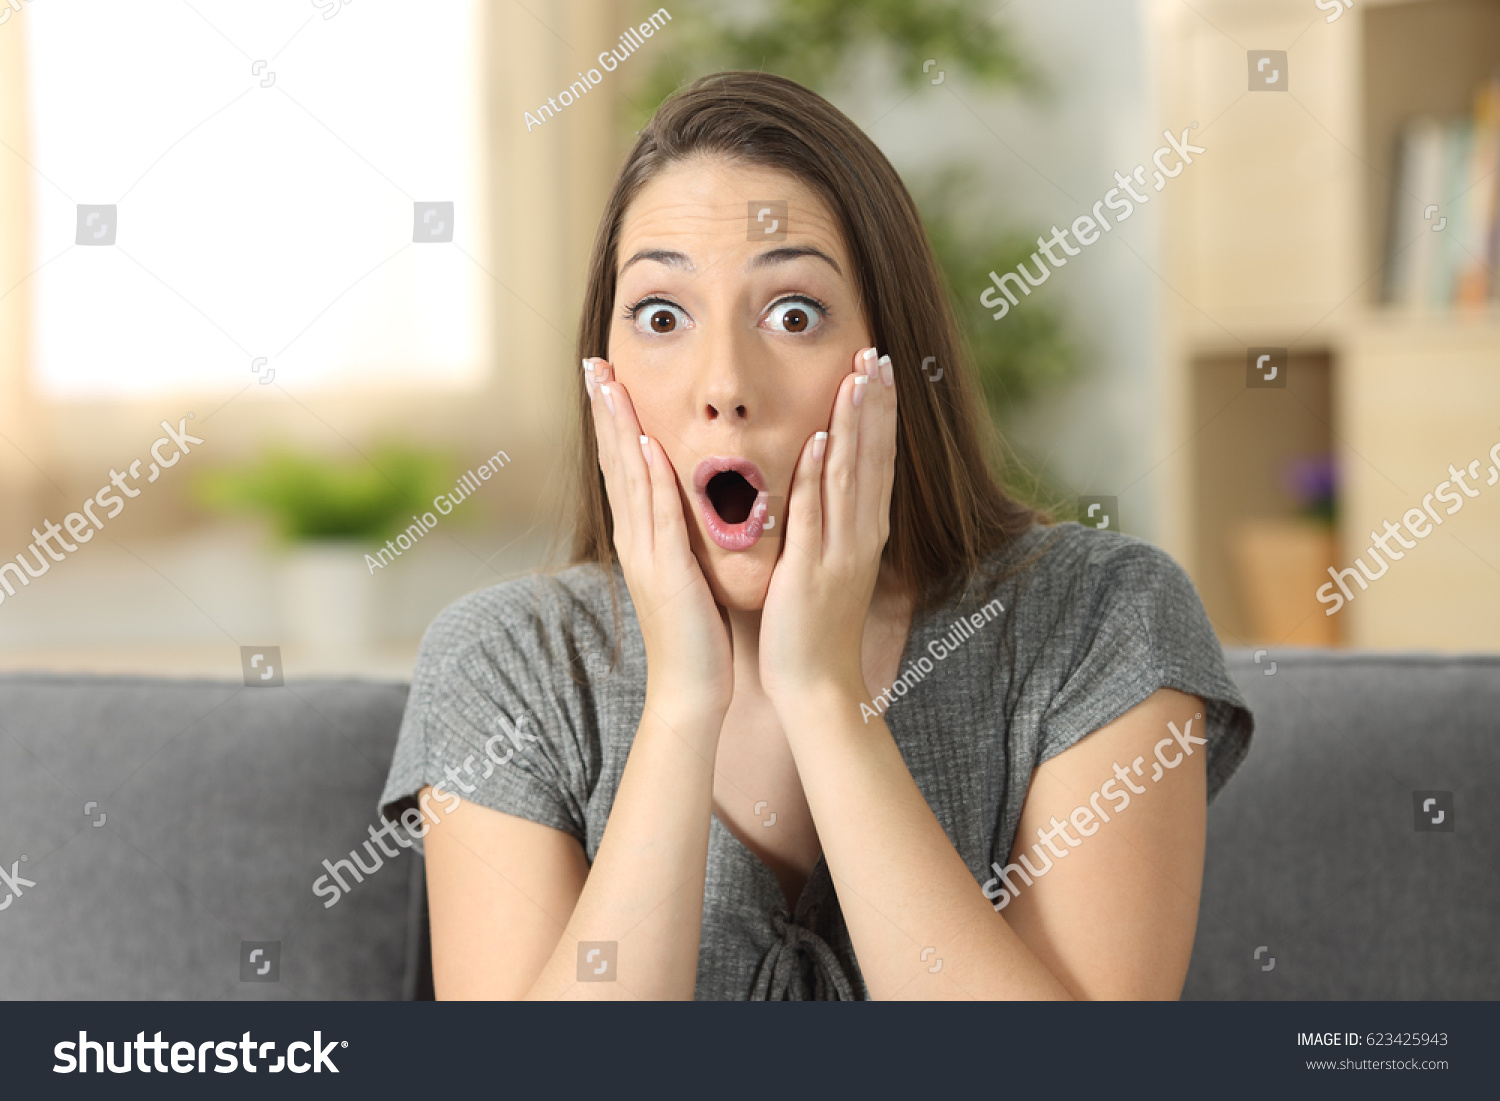 stock-photo-woman-amazed-looking-at-you-